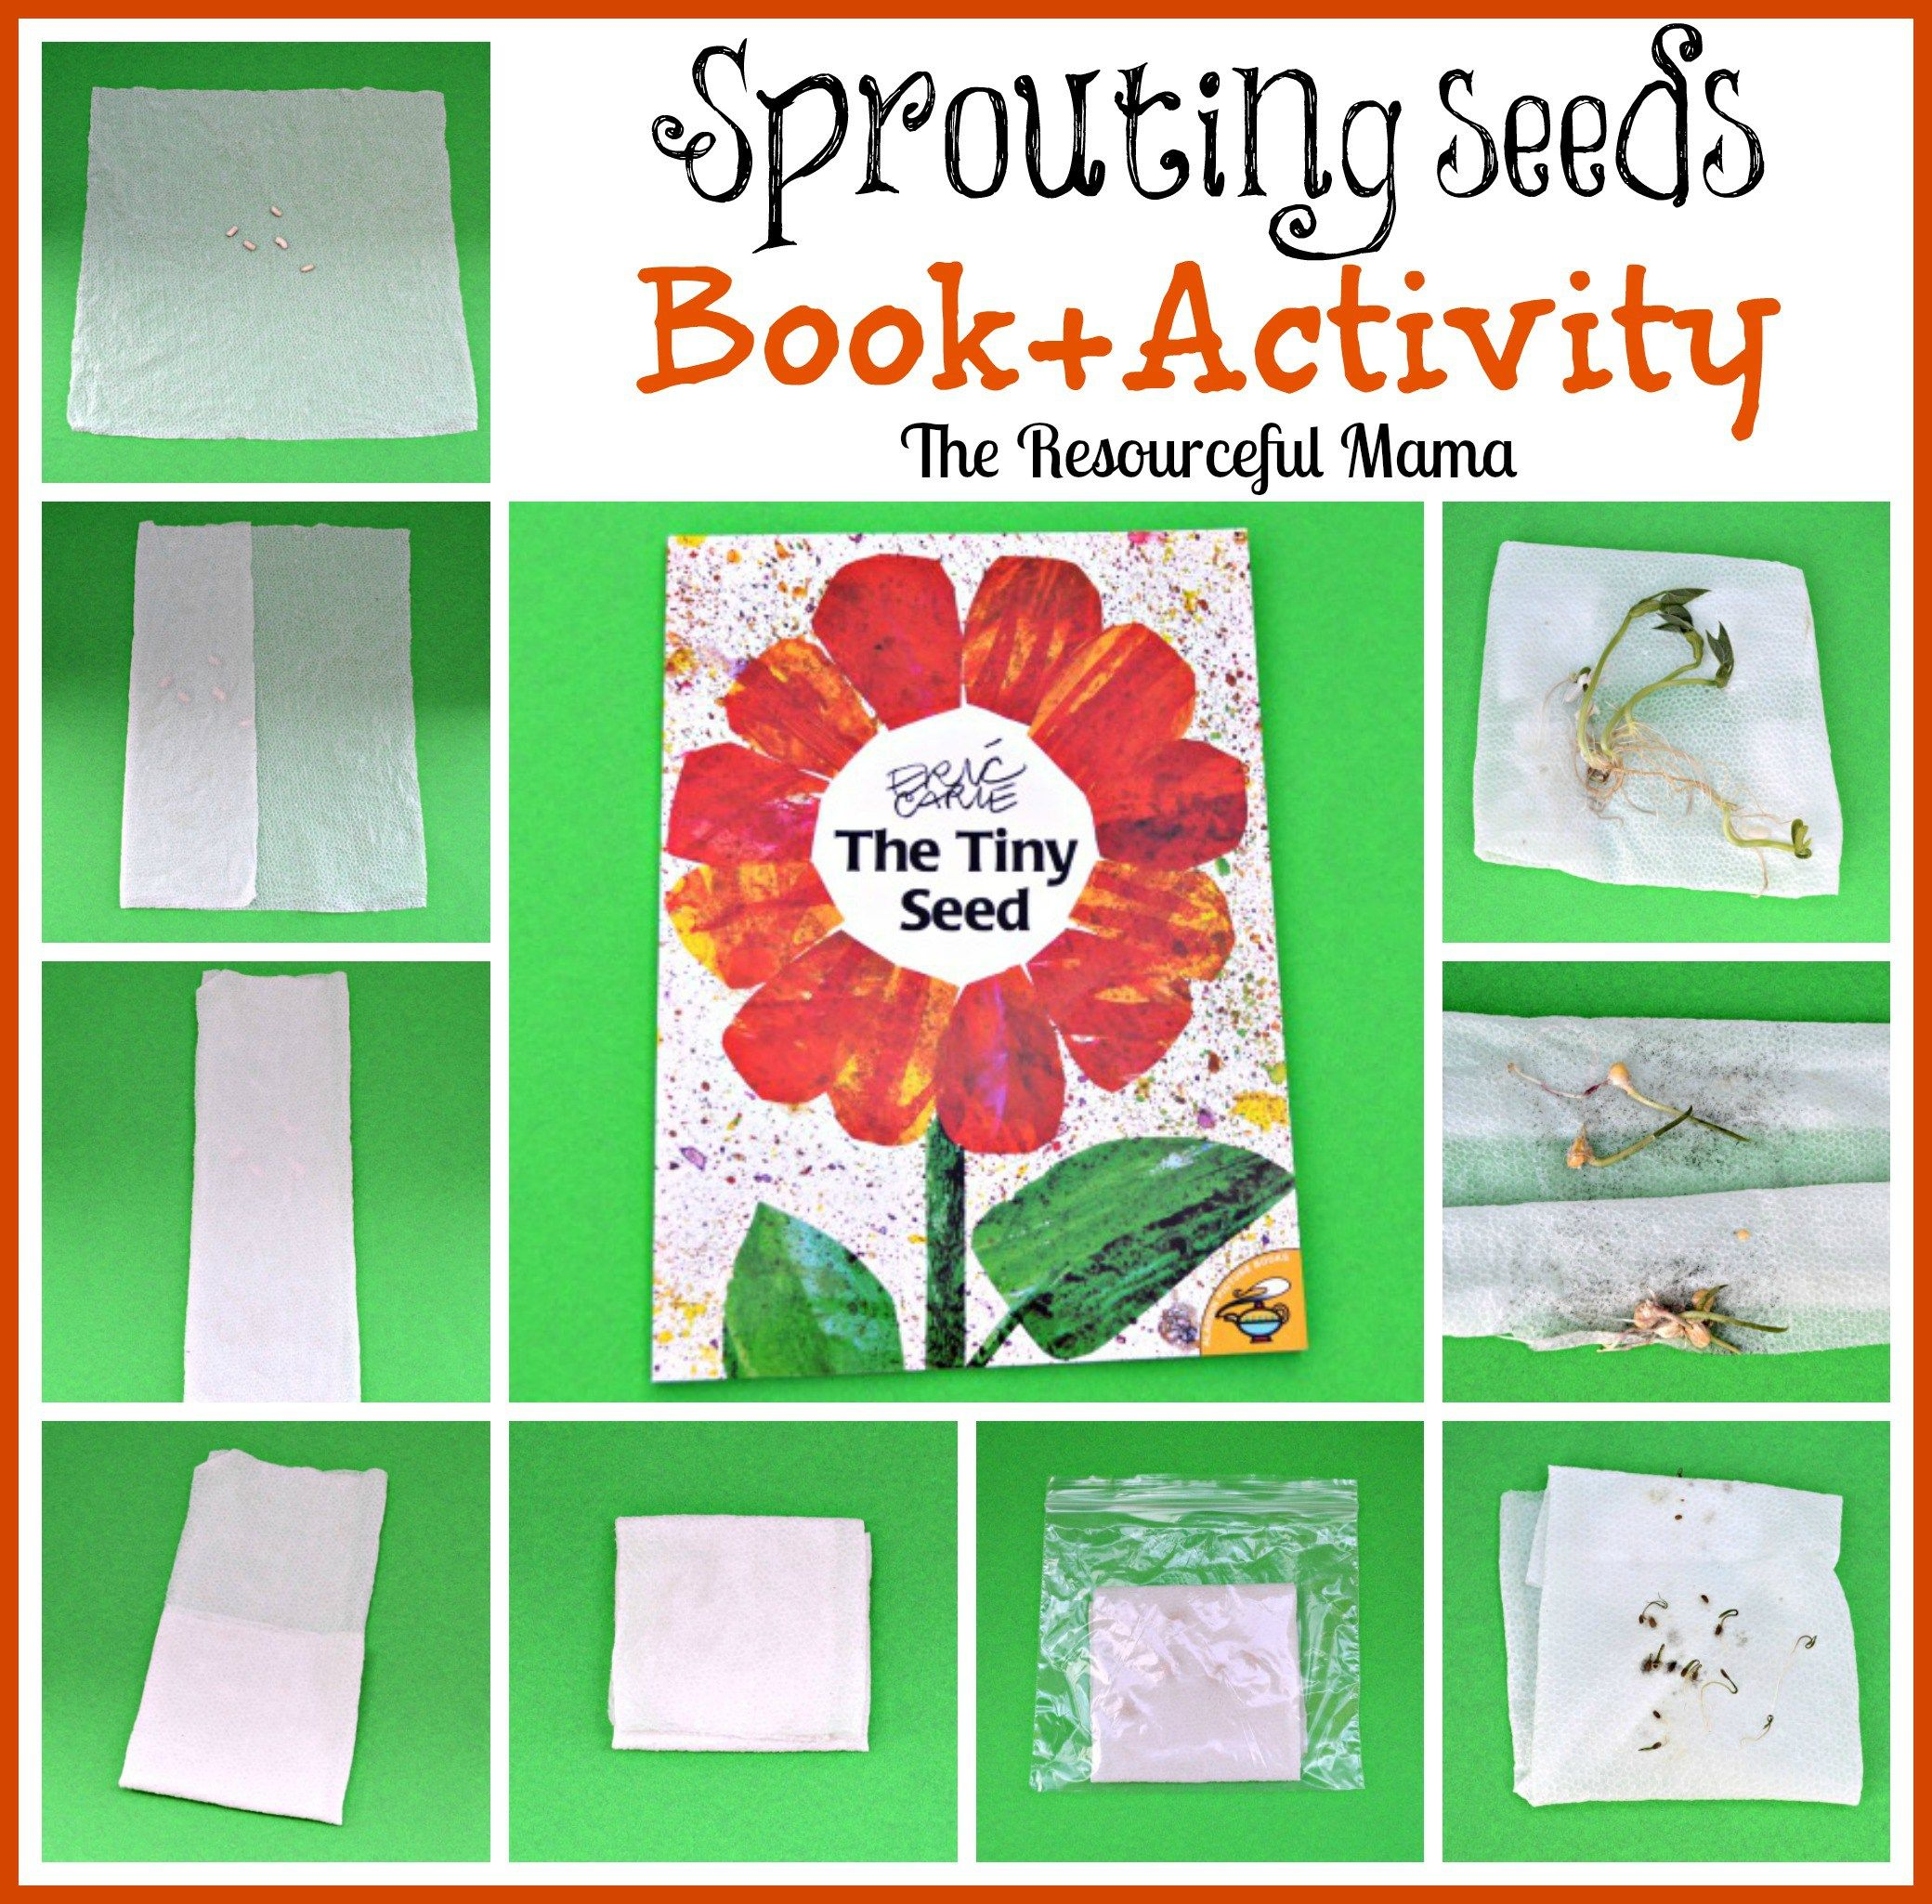 Book Craft The Tiny Seed The Resourceful Mama Seed Activities For Kids The Tiny Seed Tiny Seed Activities [ 2050 x 2080 Pixel ]